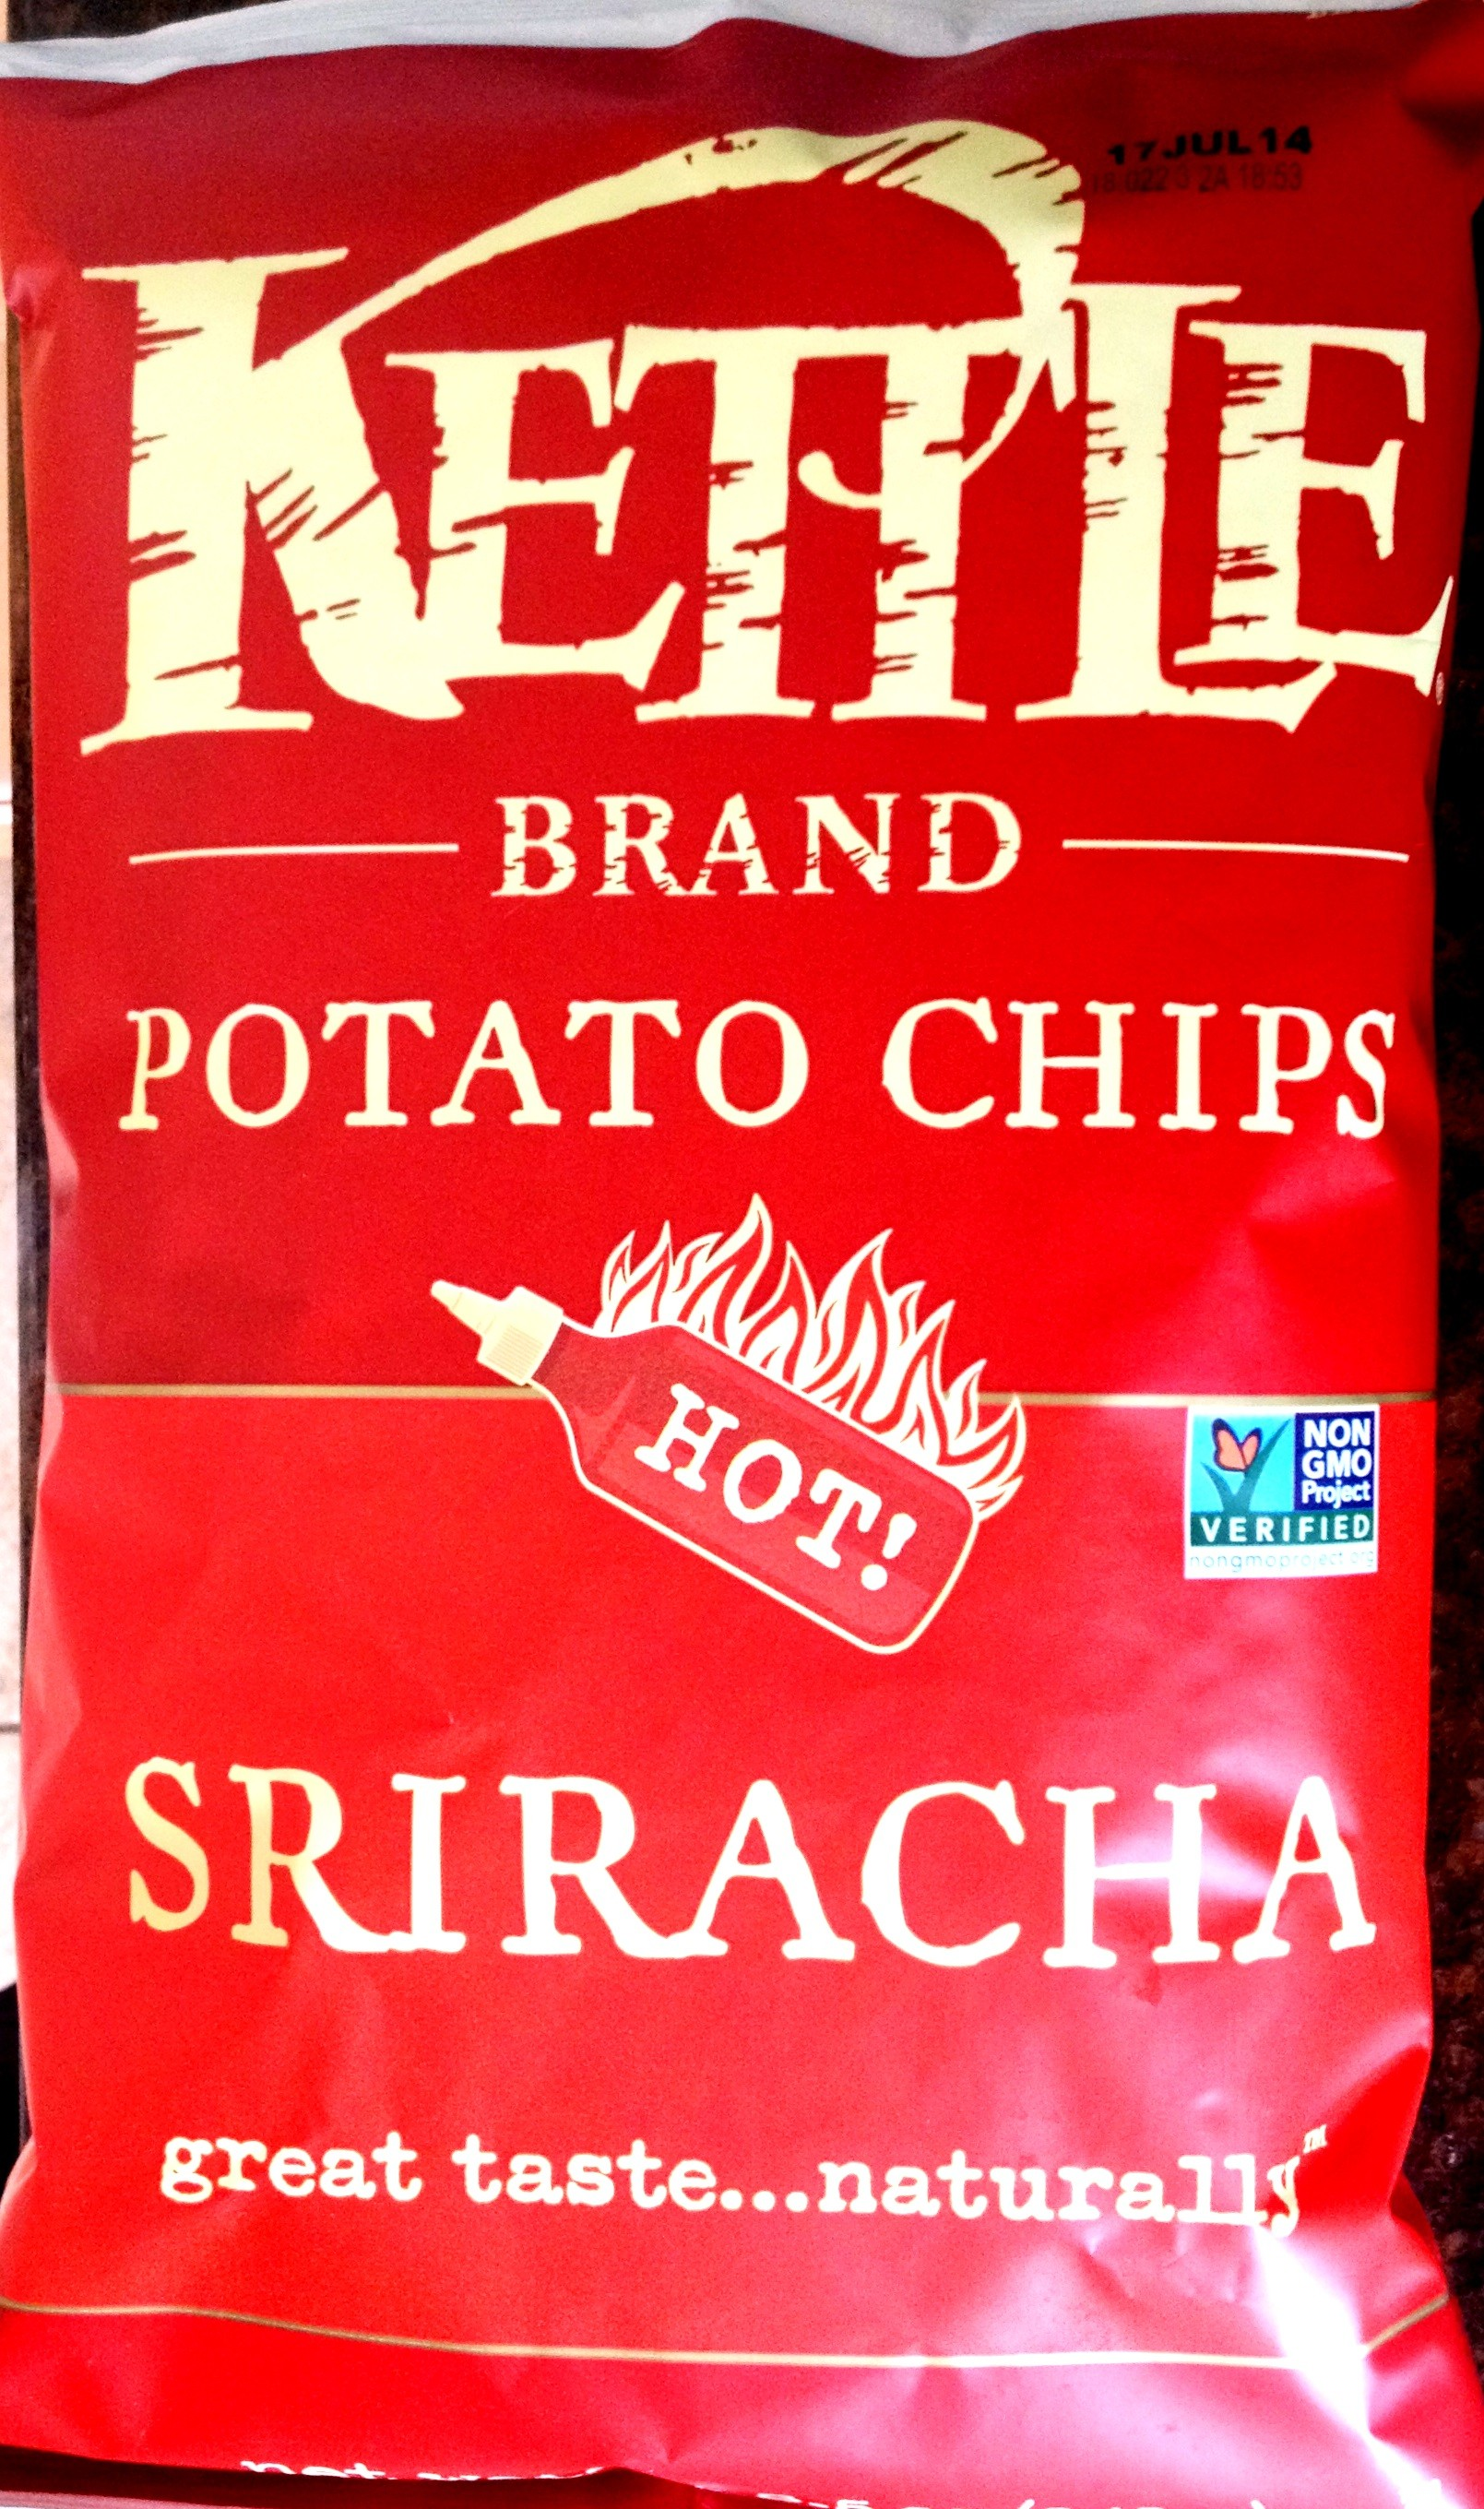 ... sriracha potato chips june 18 2014 kettle brand sriracha potato chips